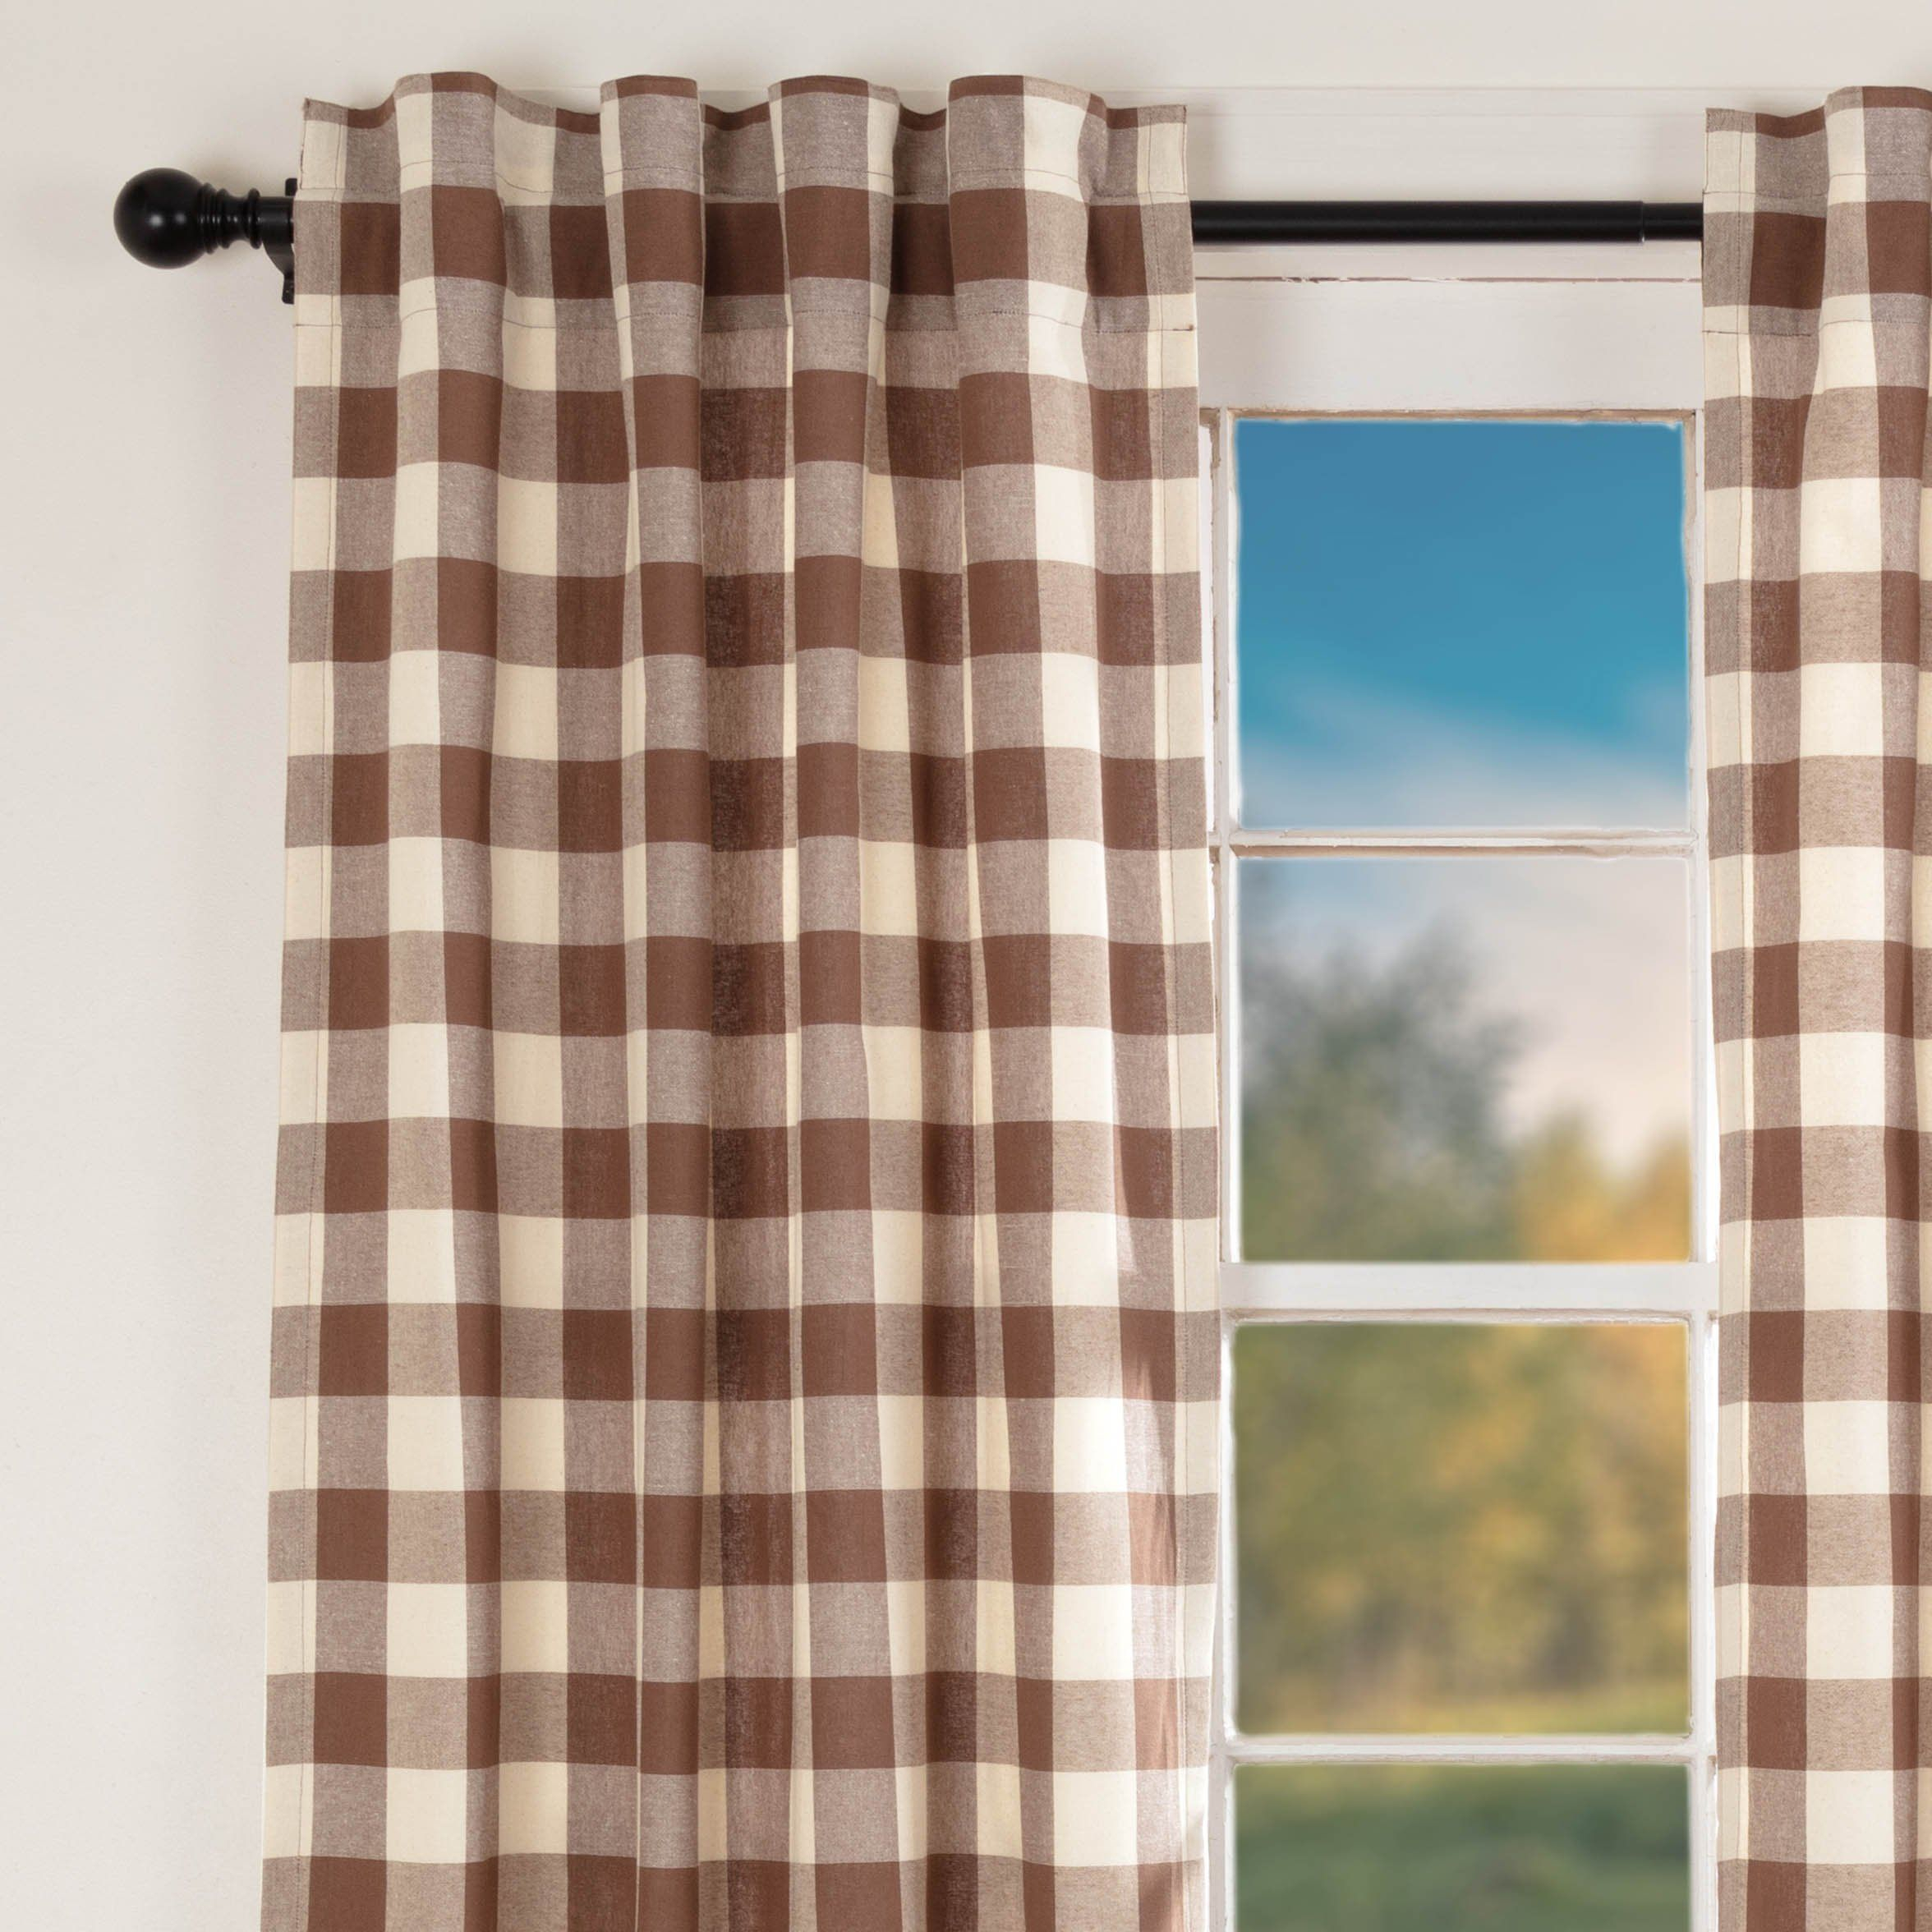 Piper Classics Dublin Buffalo Check Panel Curtains 84 Long Pertaining To Classic Navy Cotton Blend Buffalo Check Kitchen Curtain Sets (View 15 of 20)